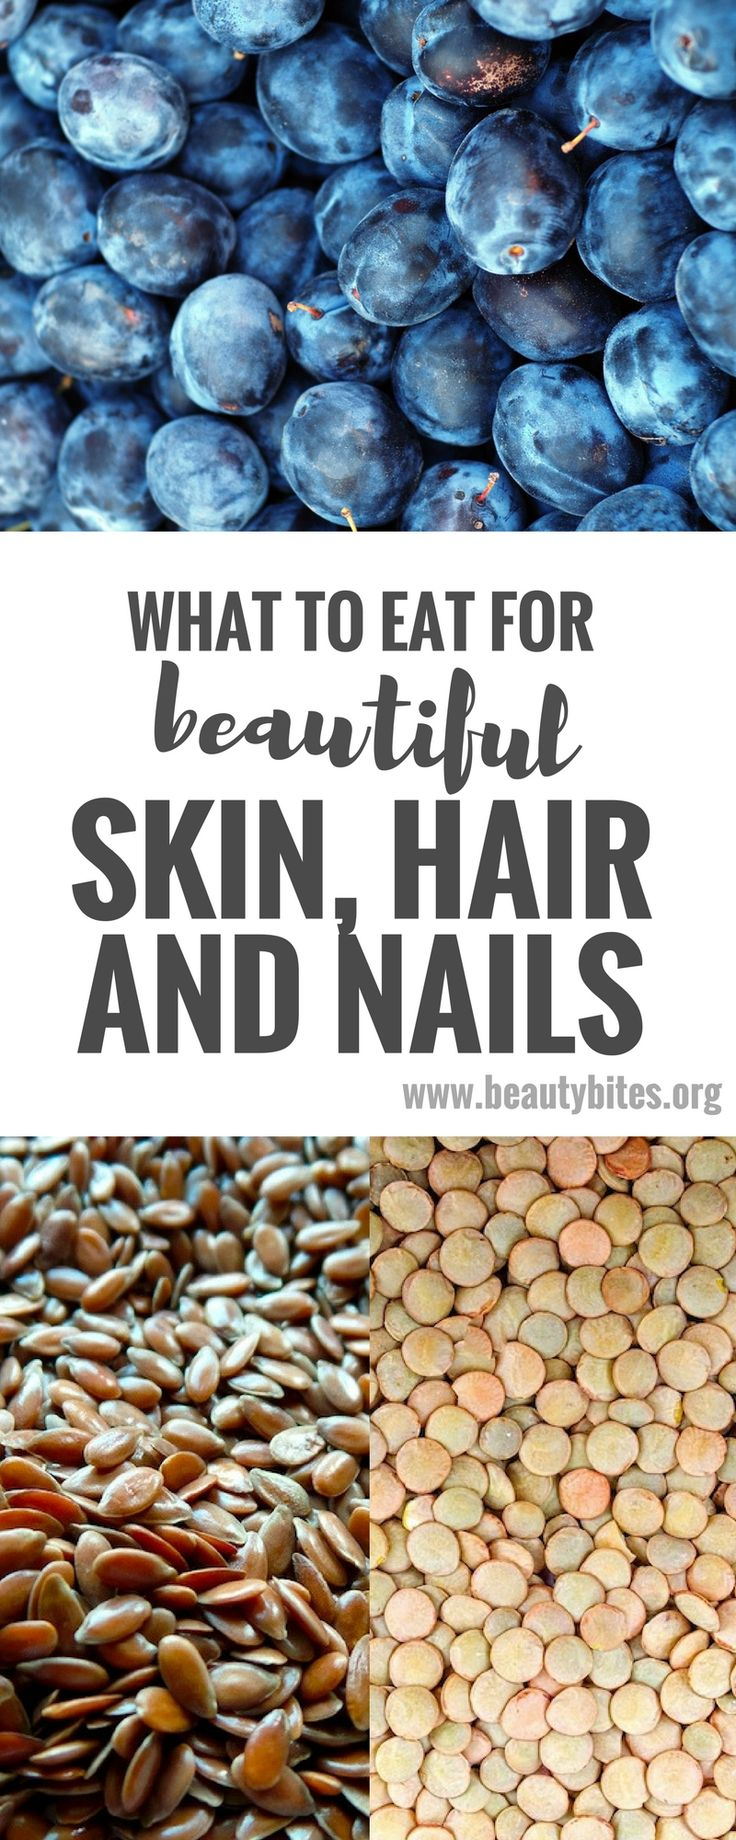 Ever wondered what to eat for glowing skin? Well, you're not alone. We all want to have flawless skin, strong nails and beautiful hair. Learn here what to eat to get rid of acne, to reduce wrinkles and swelling and to keep your hair and nails healthy. This way of eating is not a detox, cleanse or diet you just do for a few days - it's a lifestyle that will help you improve your skin, lose weight, stay healthy and energized to enjoy life to the fullest.